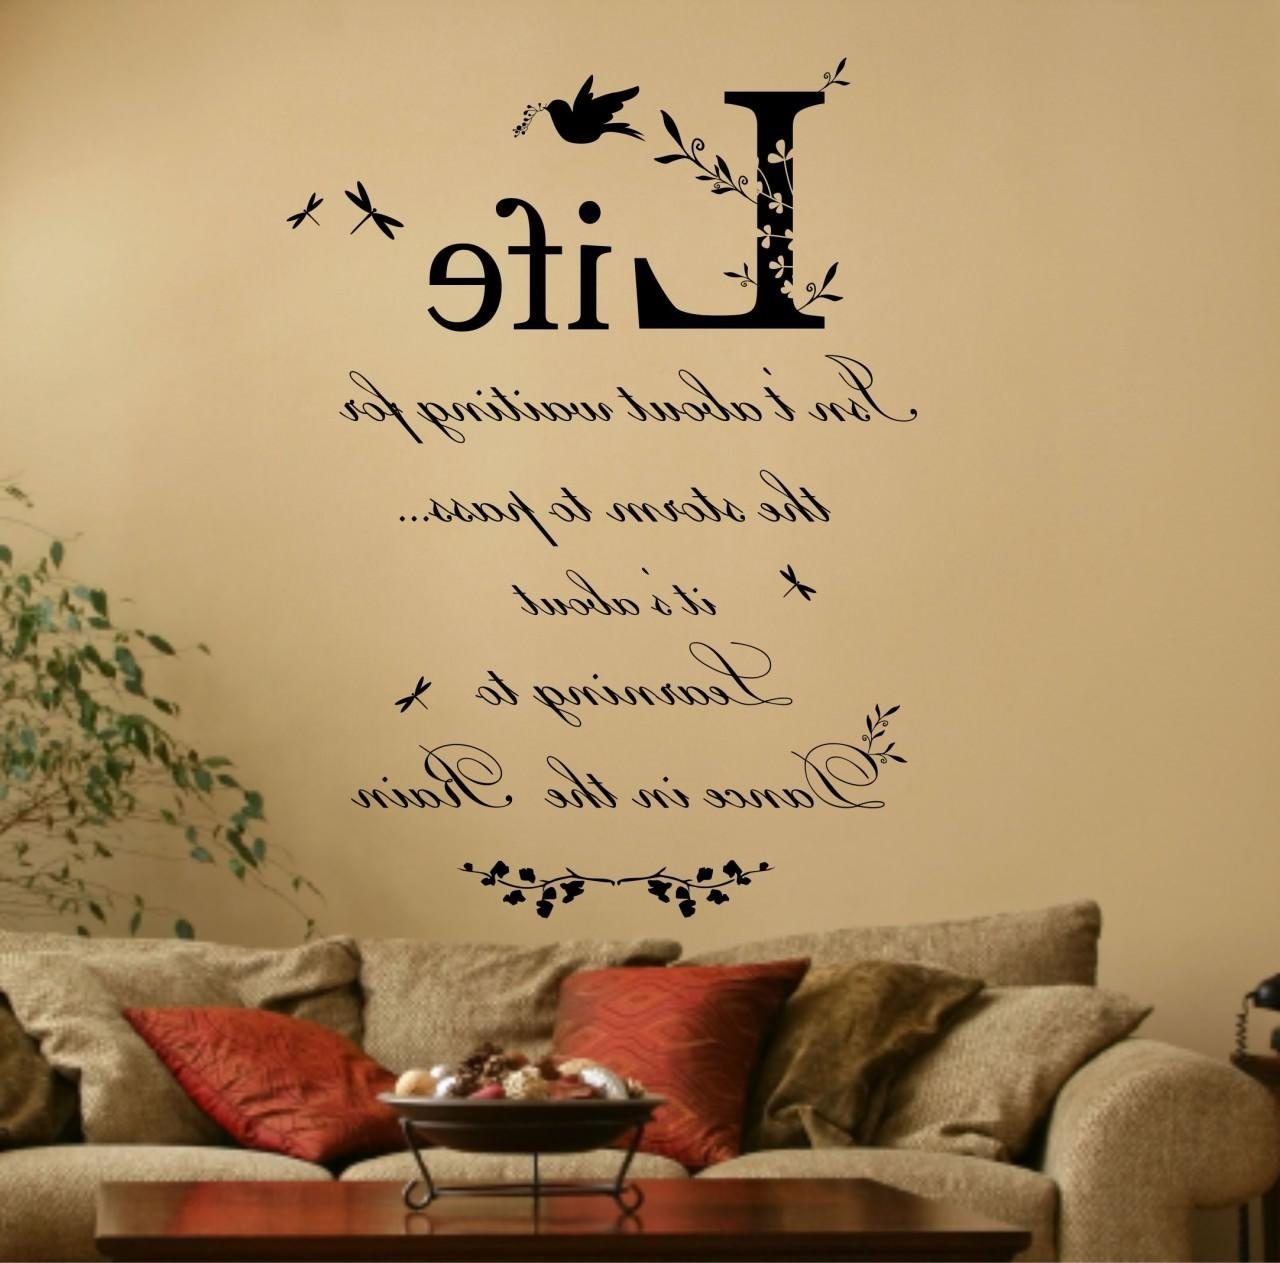 Amazing Wall Art Writing Image - Wall Art Collections ...